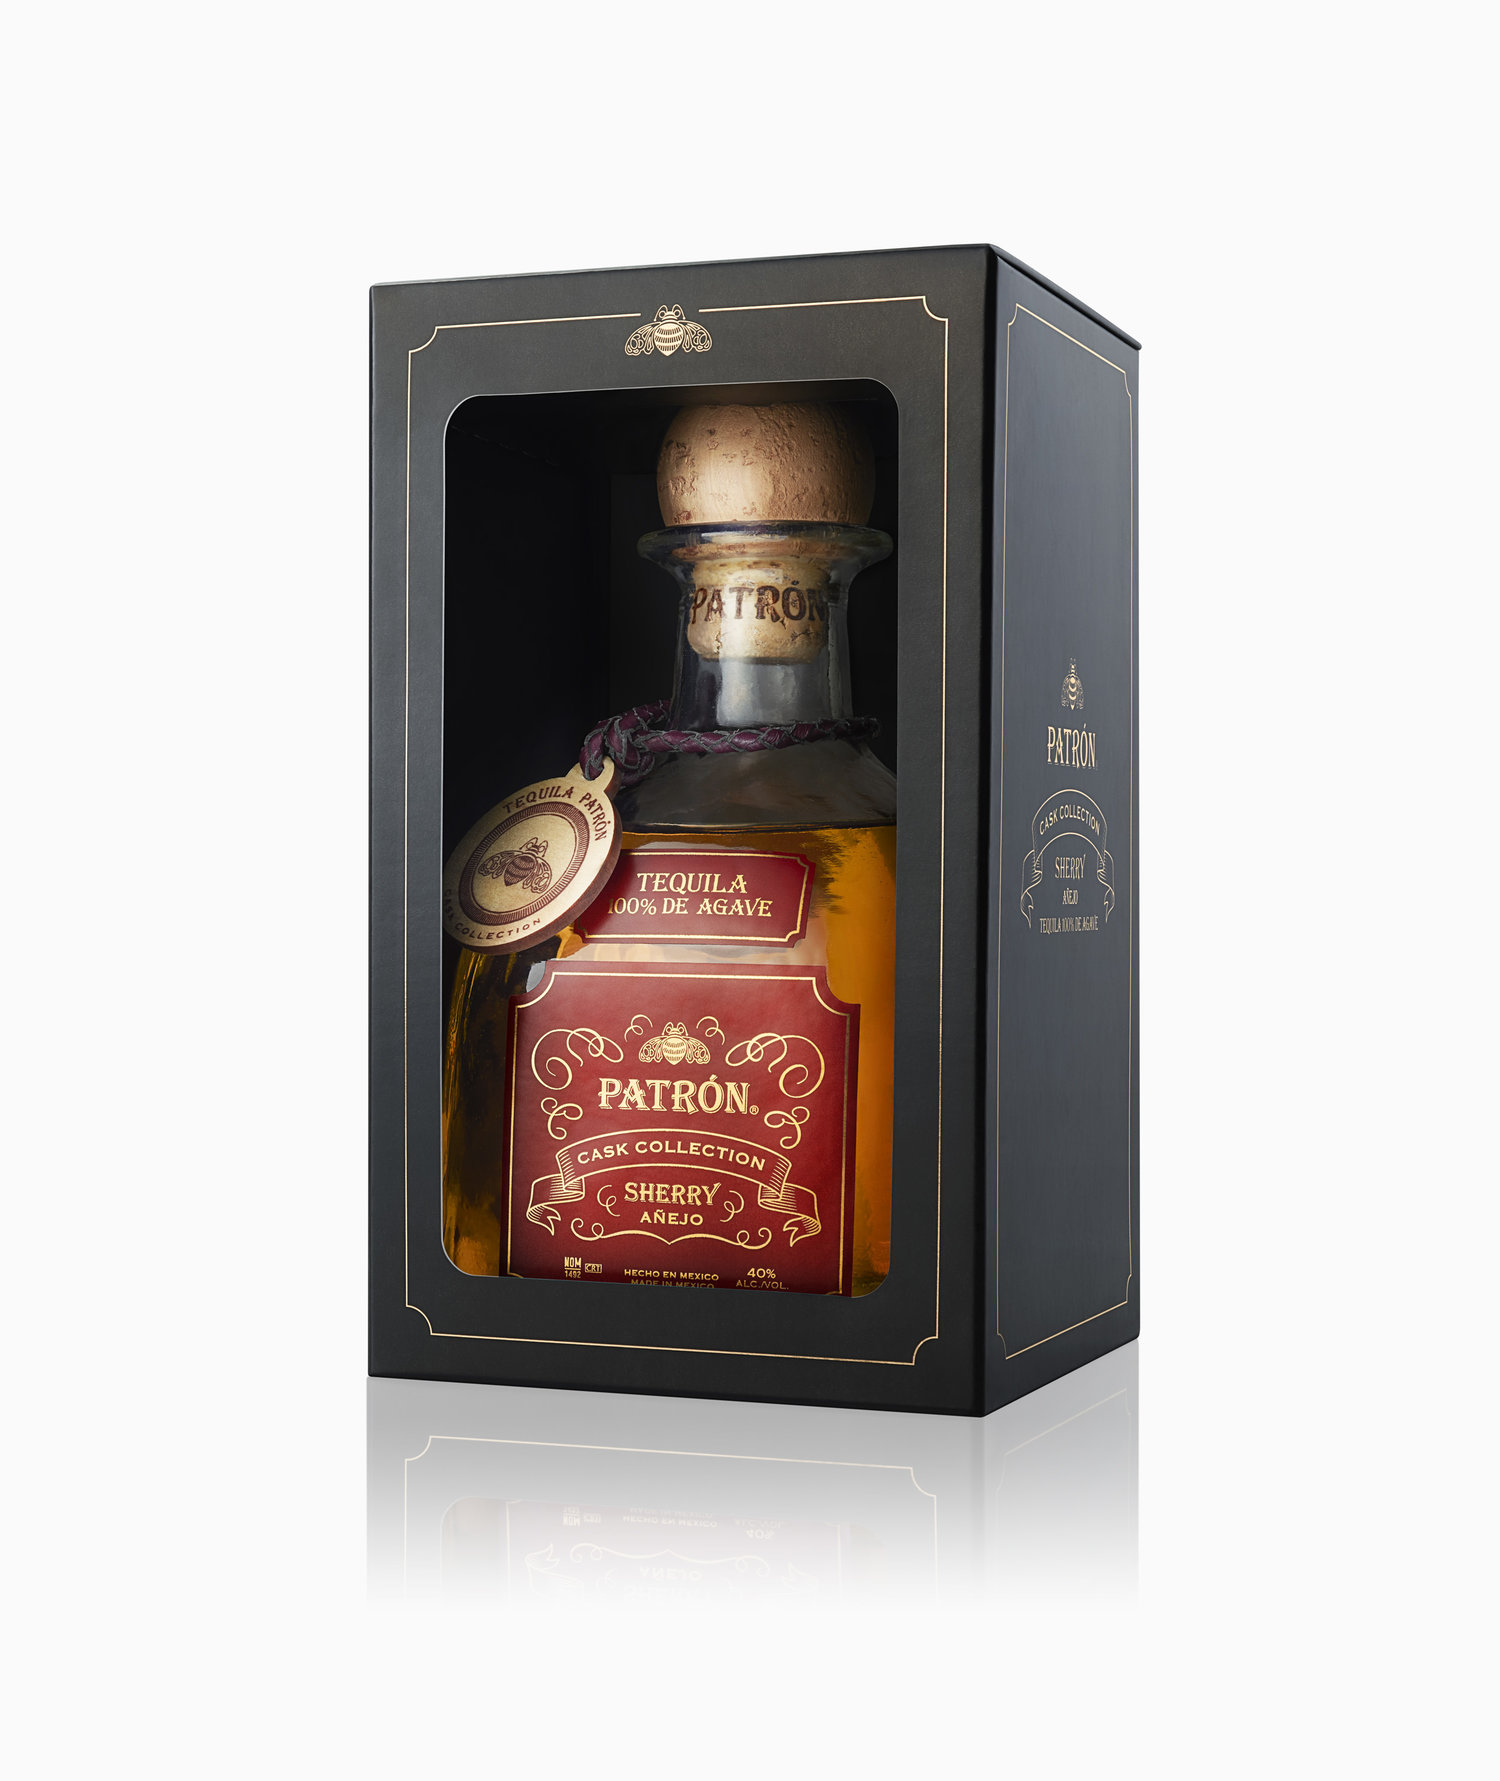 PATRON_Sherry_Bottle_750ml_BottleInBoxAngle